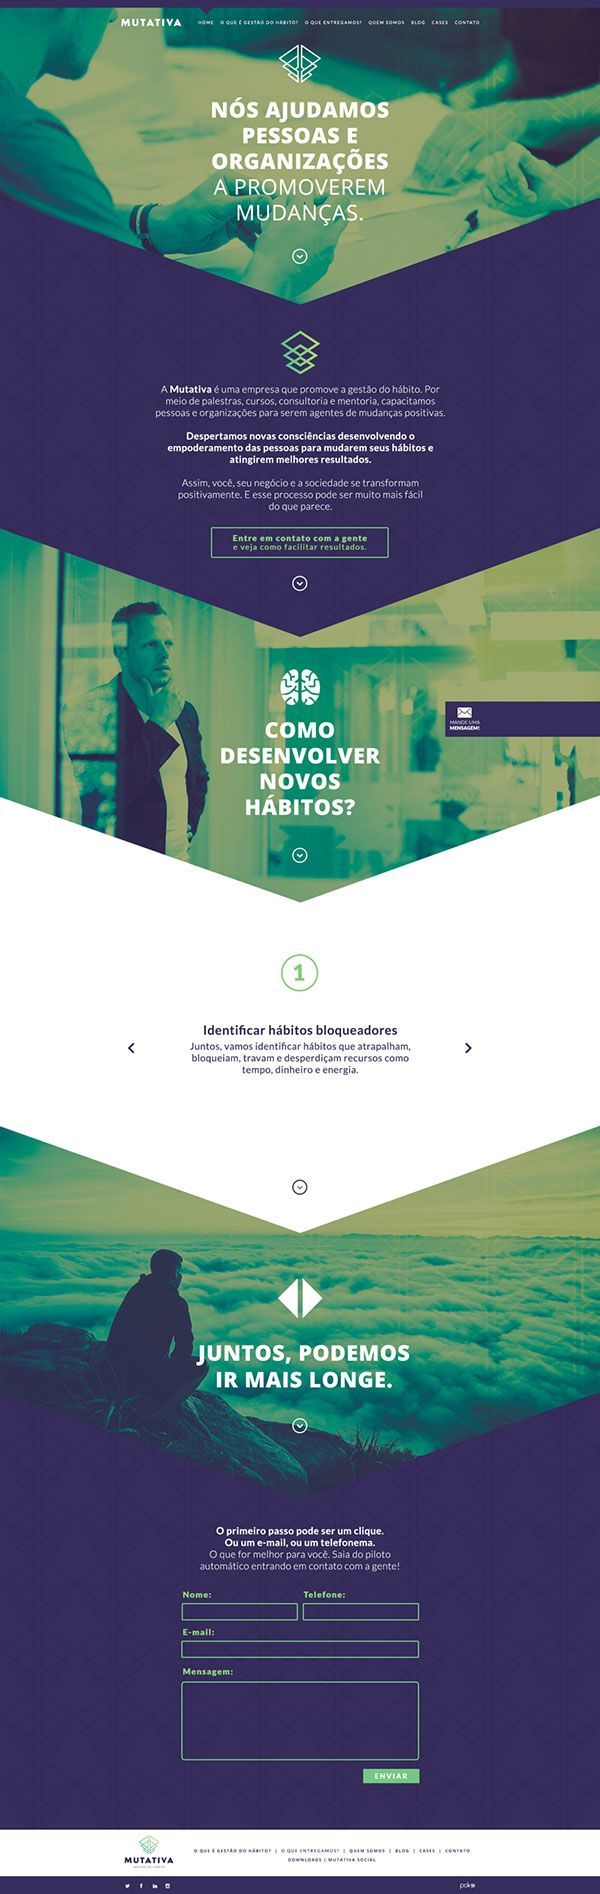 Best 25+ Design responsivo ideas on Pinterest | Website portfólio ...